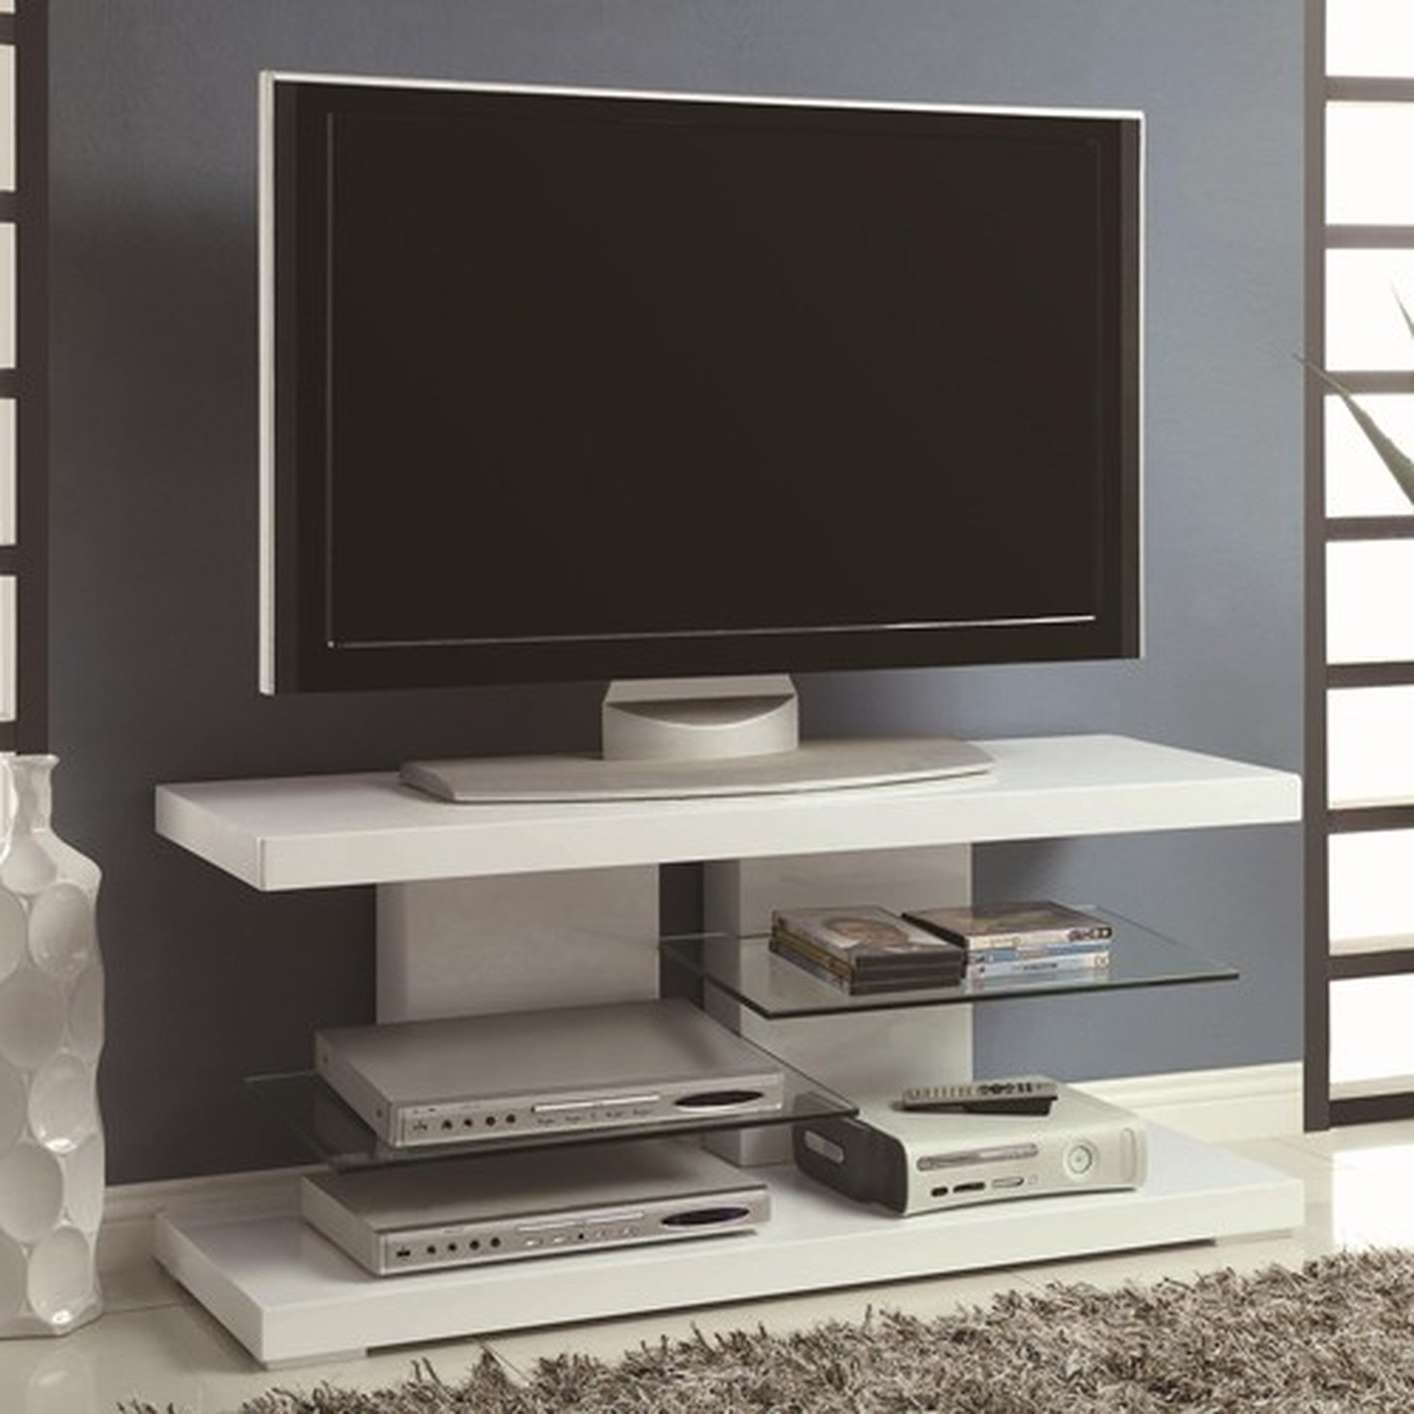 Tv : Product Amazing Glass Tv Cabinets Contemporary Tv Wall Unit Inside Contemporary Glass Tv Stands (View 11 of 15)